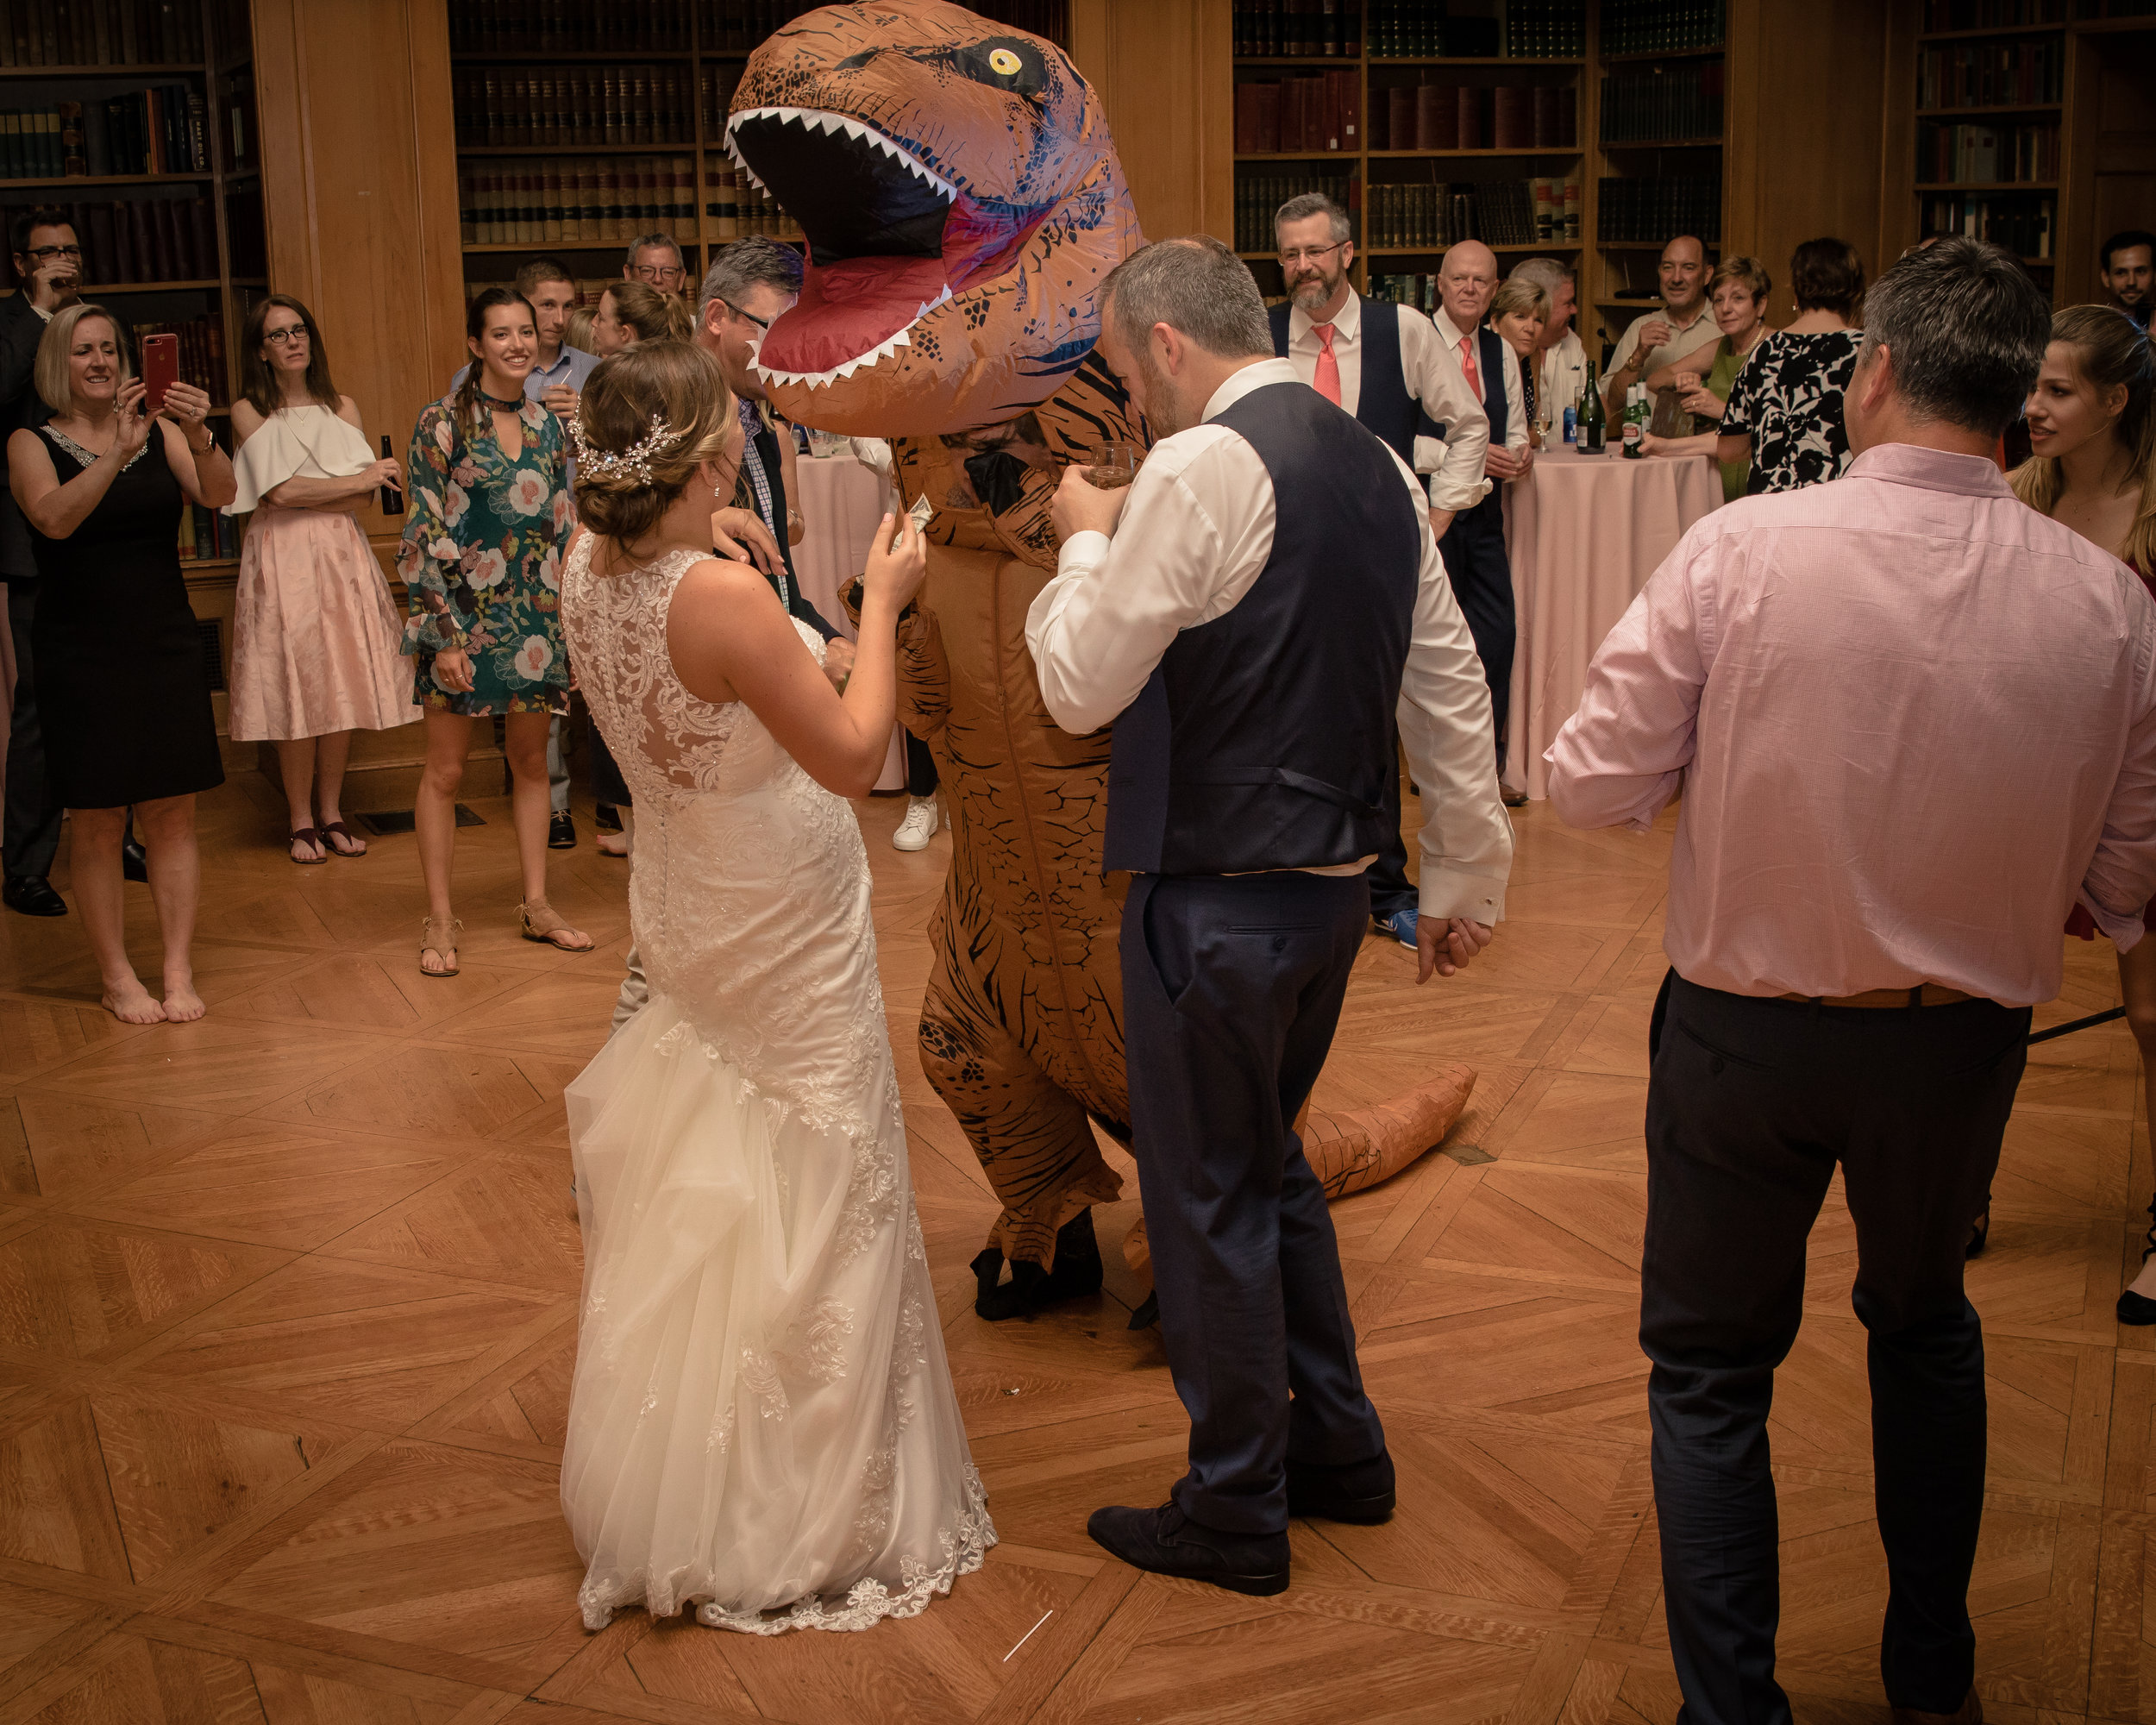 Morgan & Cole - Monticello, IllinoisVenue: Allerton ParkPhotographer: J. CaughronVibe: VintageBest part of our wedding? First look or the dinosaur dance